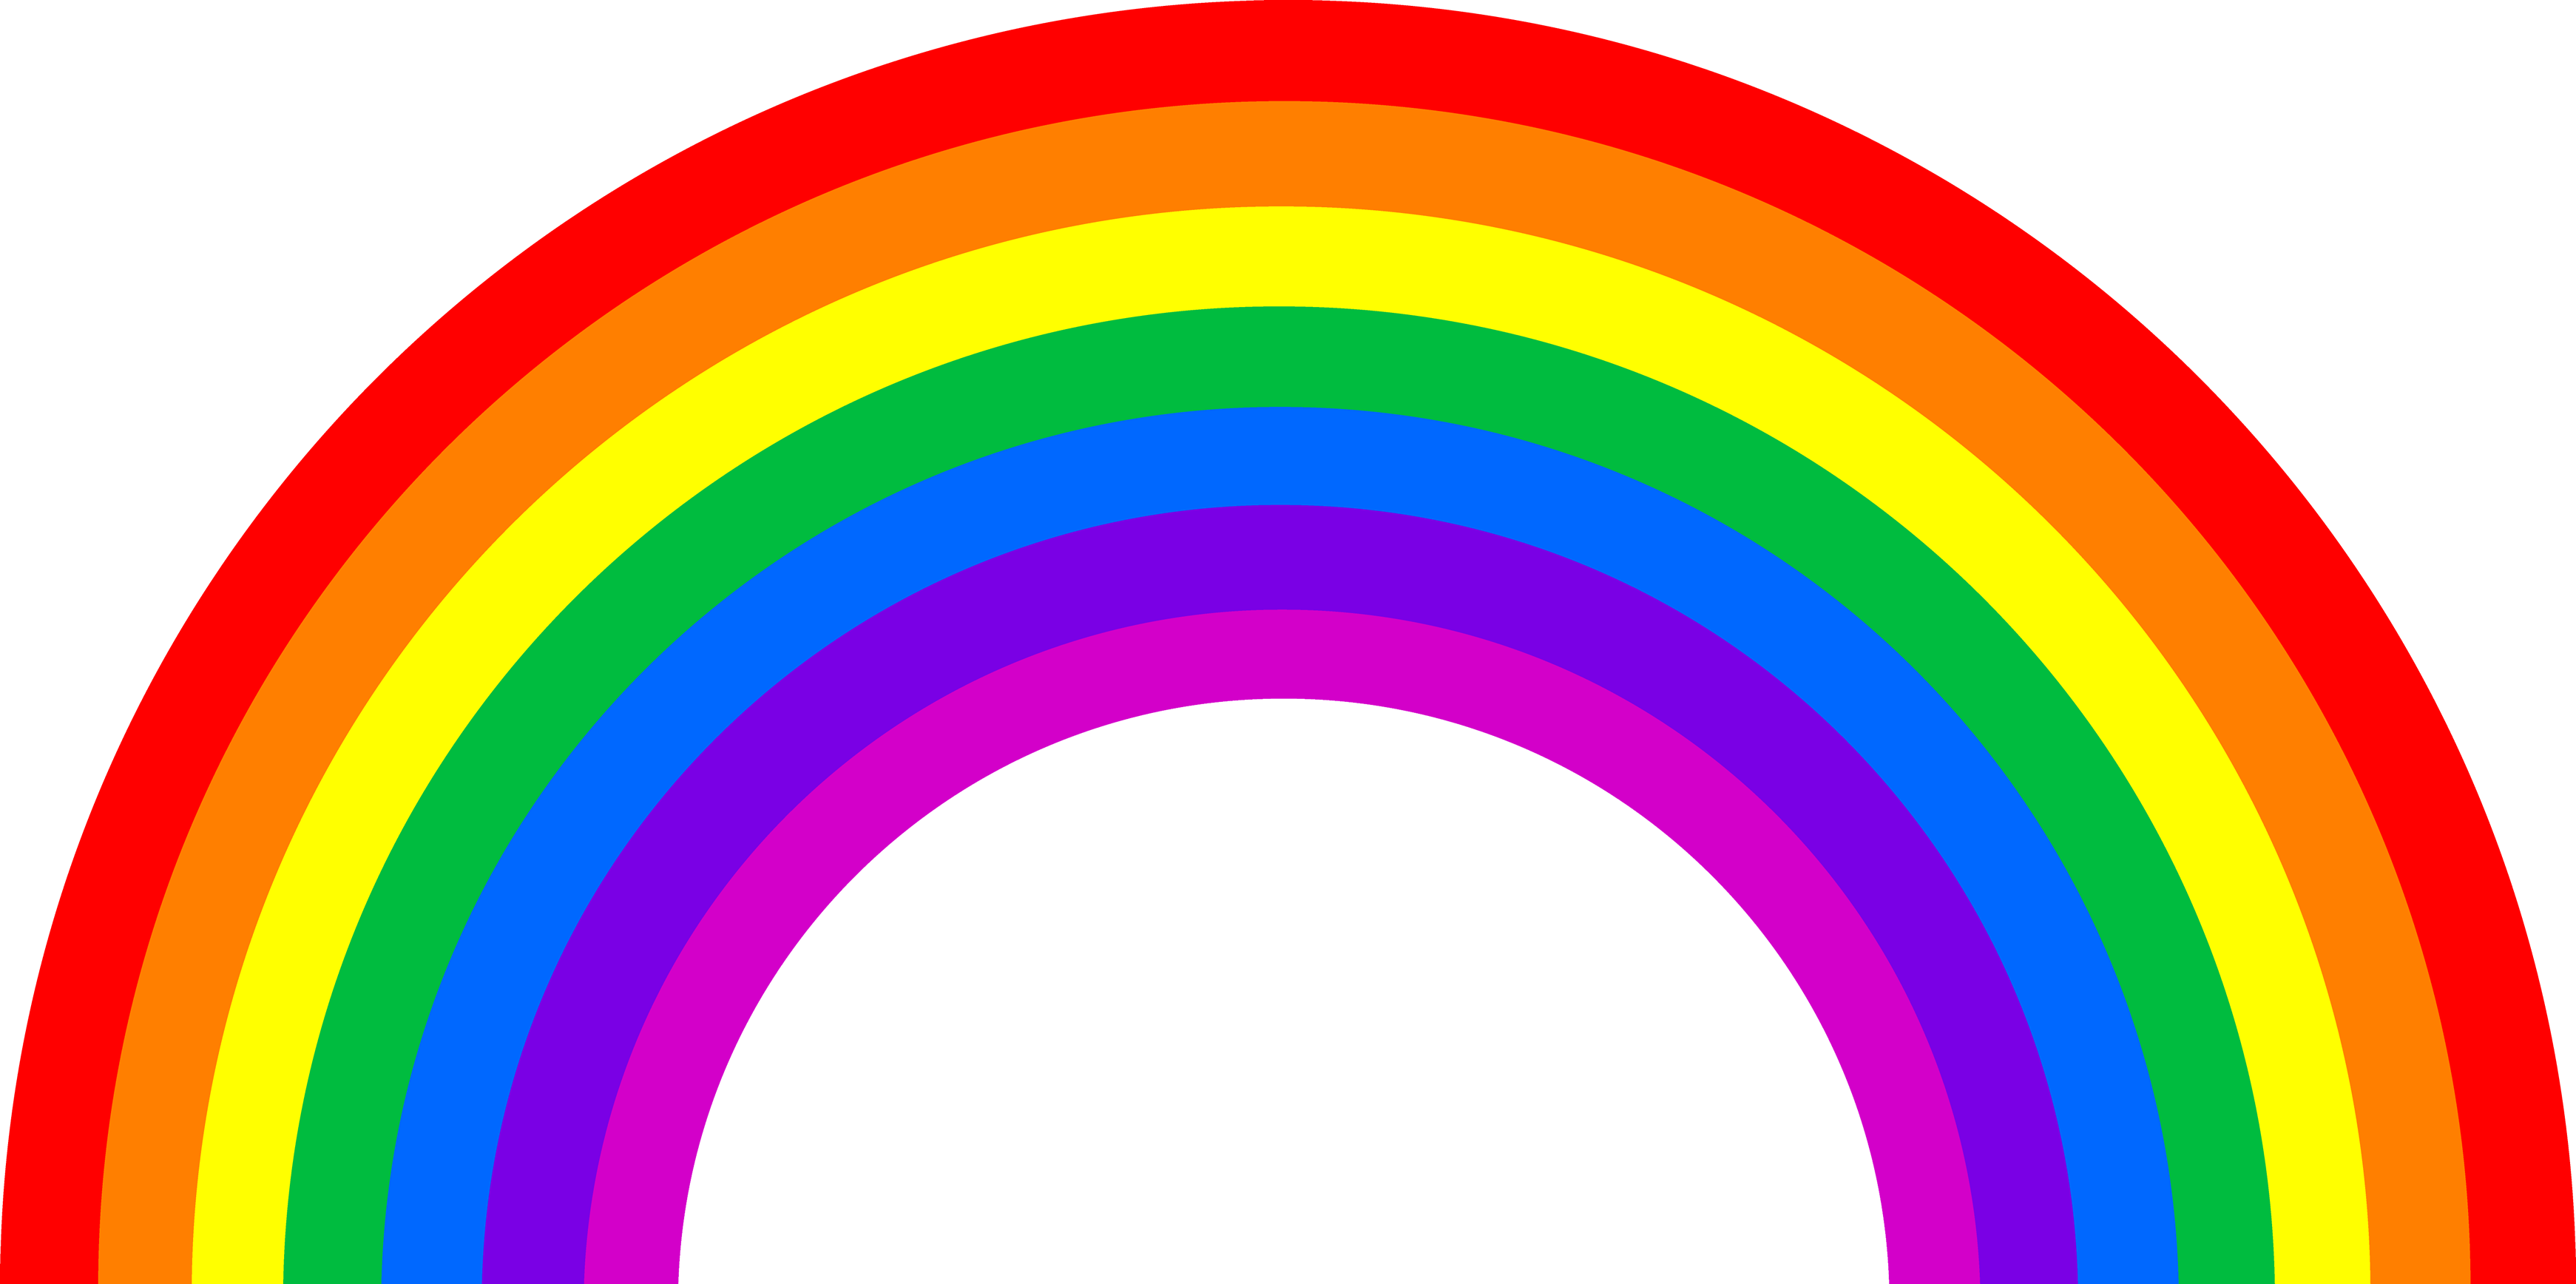 Clipart rainbow camera. Transparent background free download